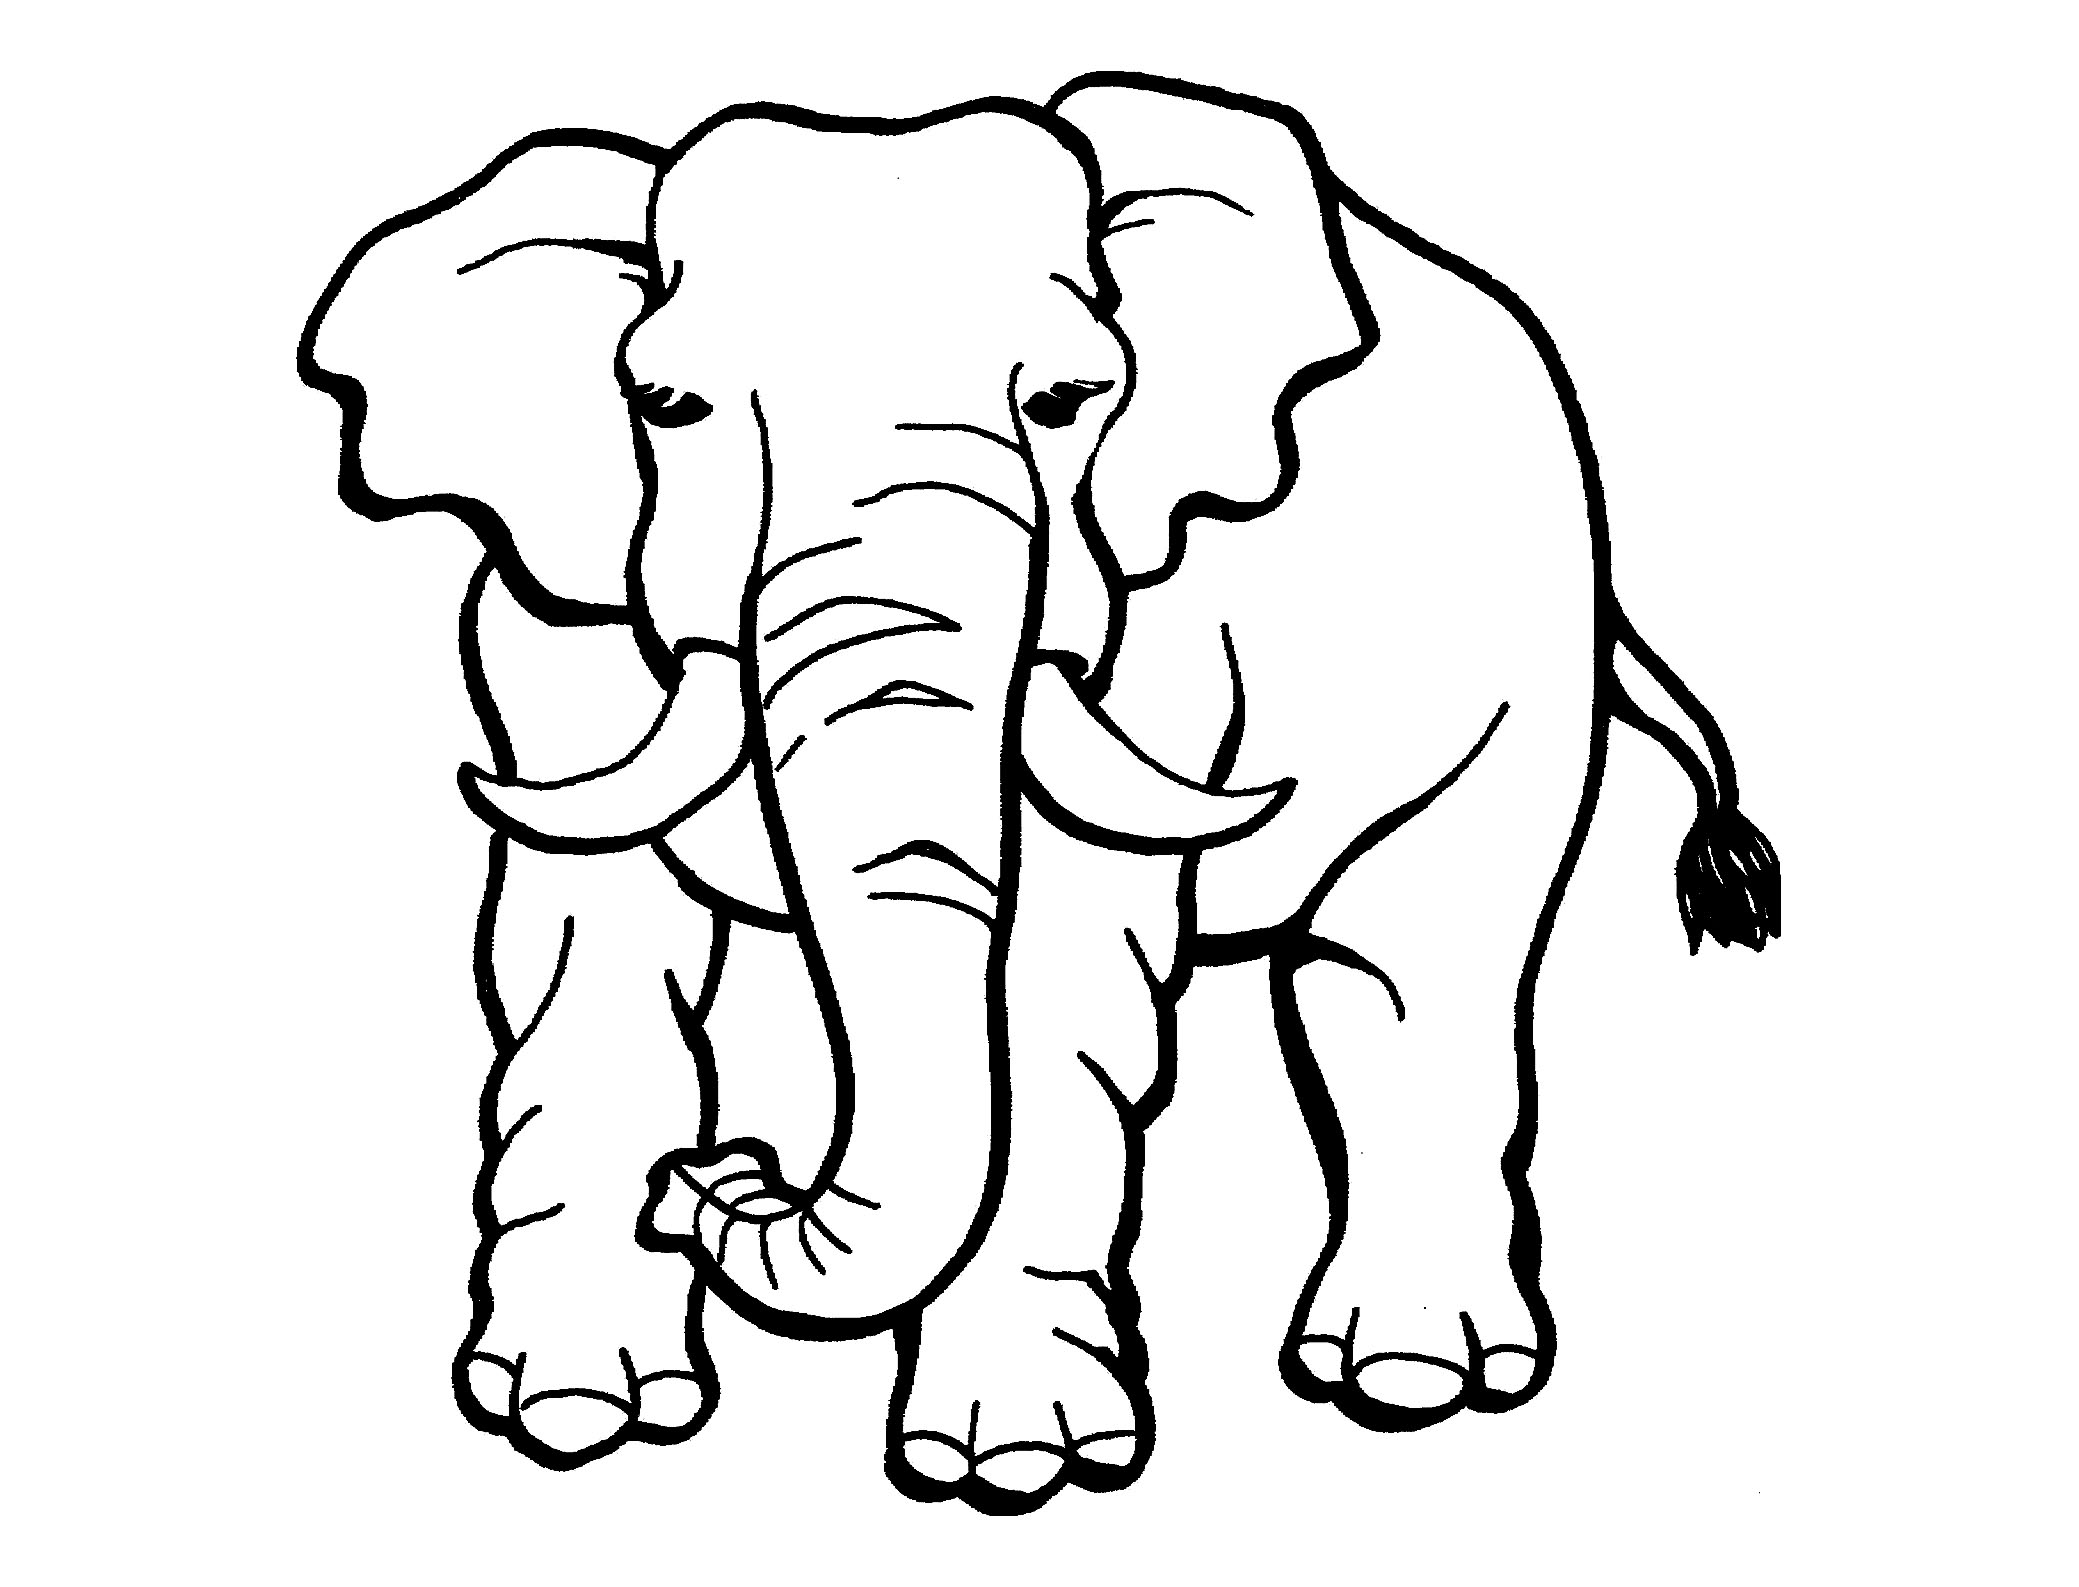 colouring picture of elephant 21 of the best ideas for baby elephant coloring page picture of colouring elephant